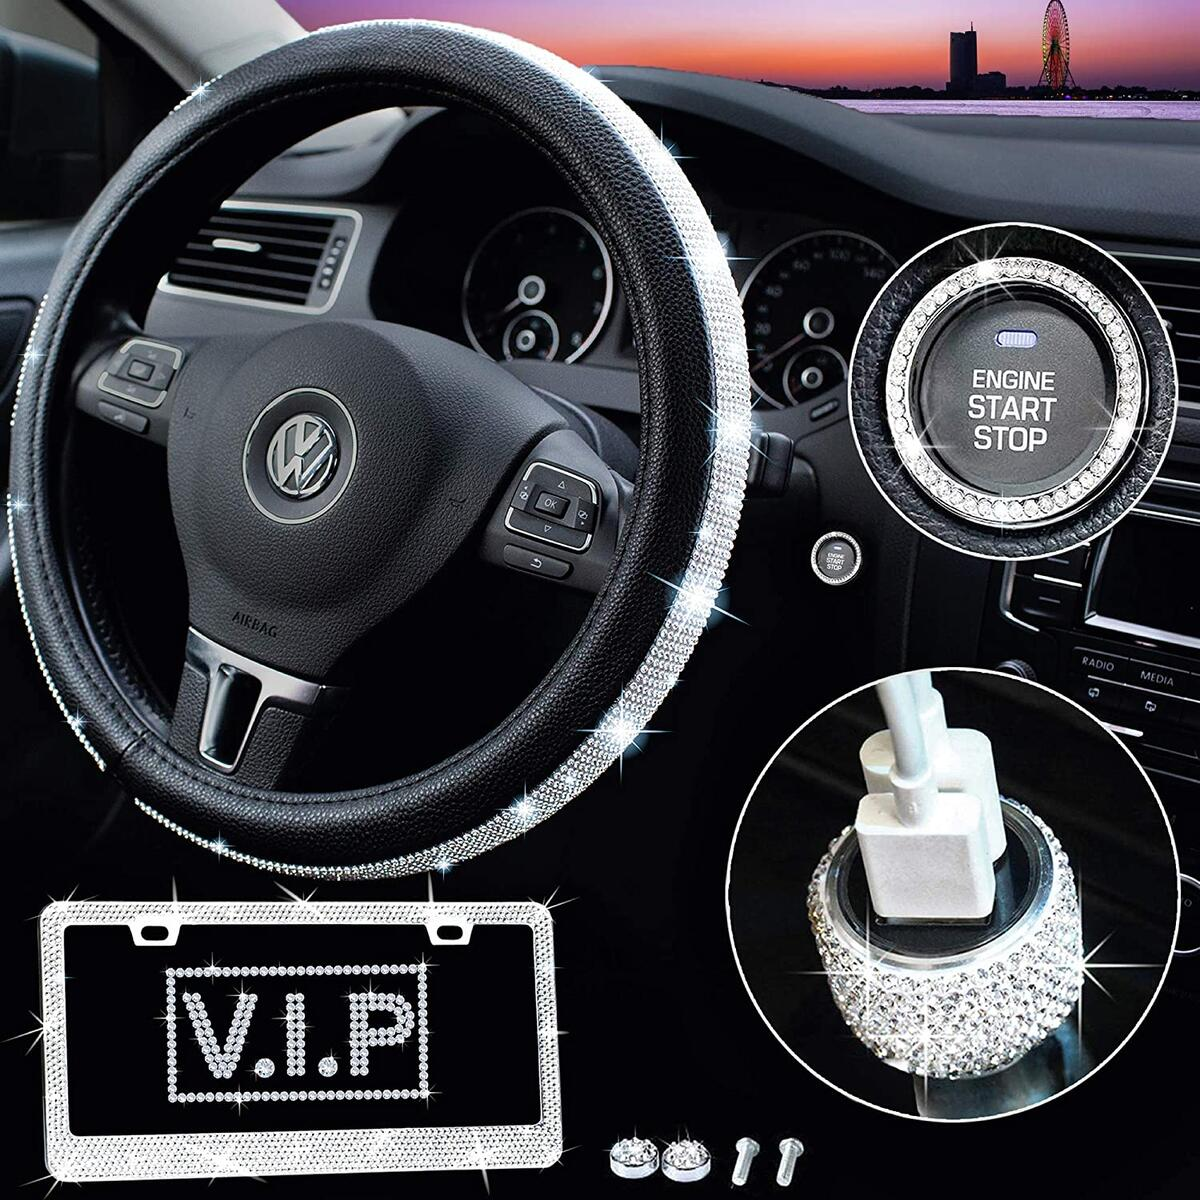 Bling Car Accessories for Women - Diamond Bling Steering Wheel Cover for Women Girls Universal 15 Inch, Crystal Bling License Plate Frame, Car USB Charger, Rhinestone Car Decorations Set